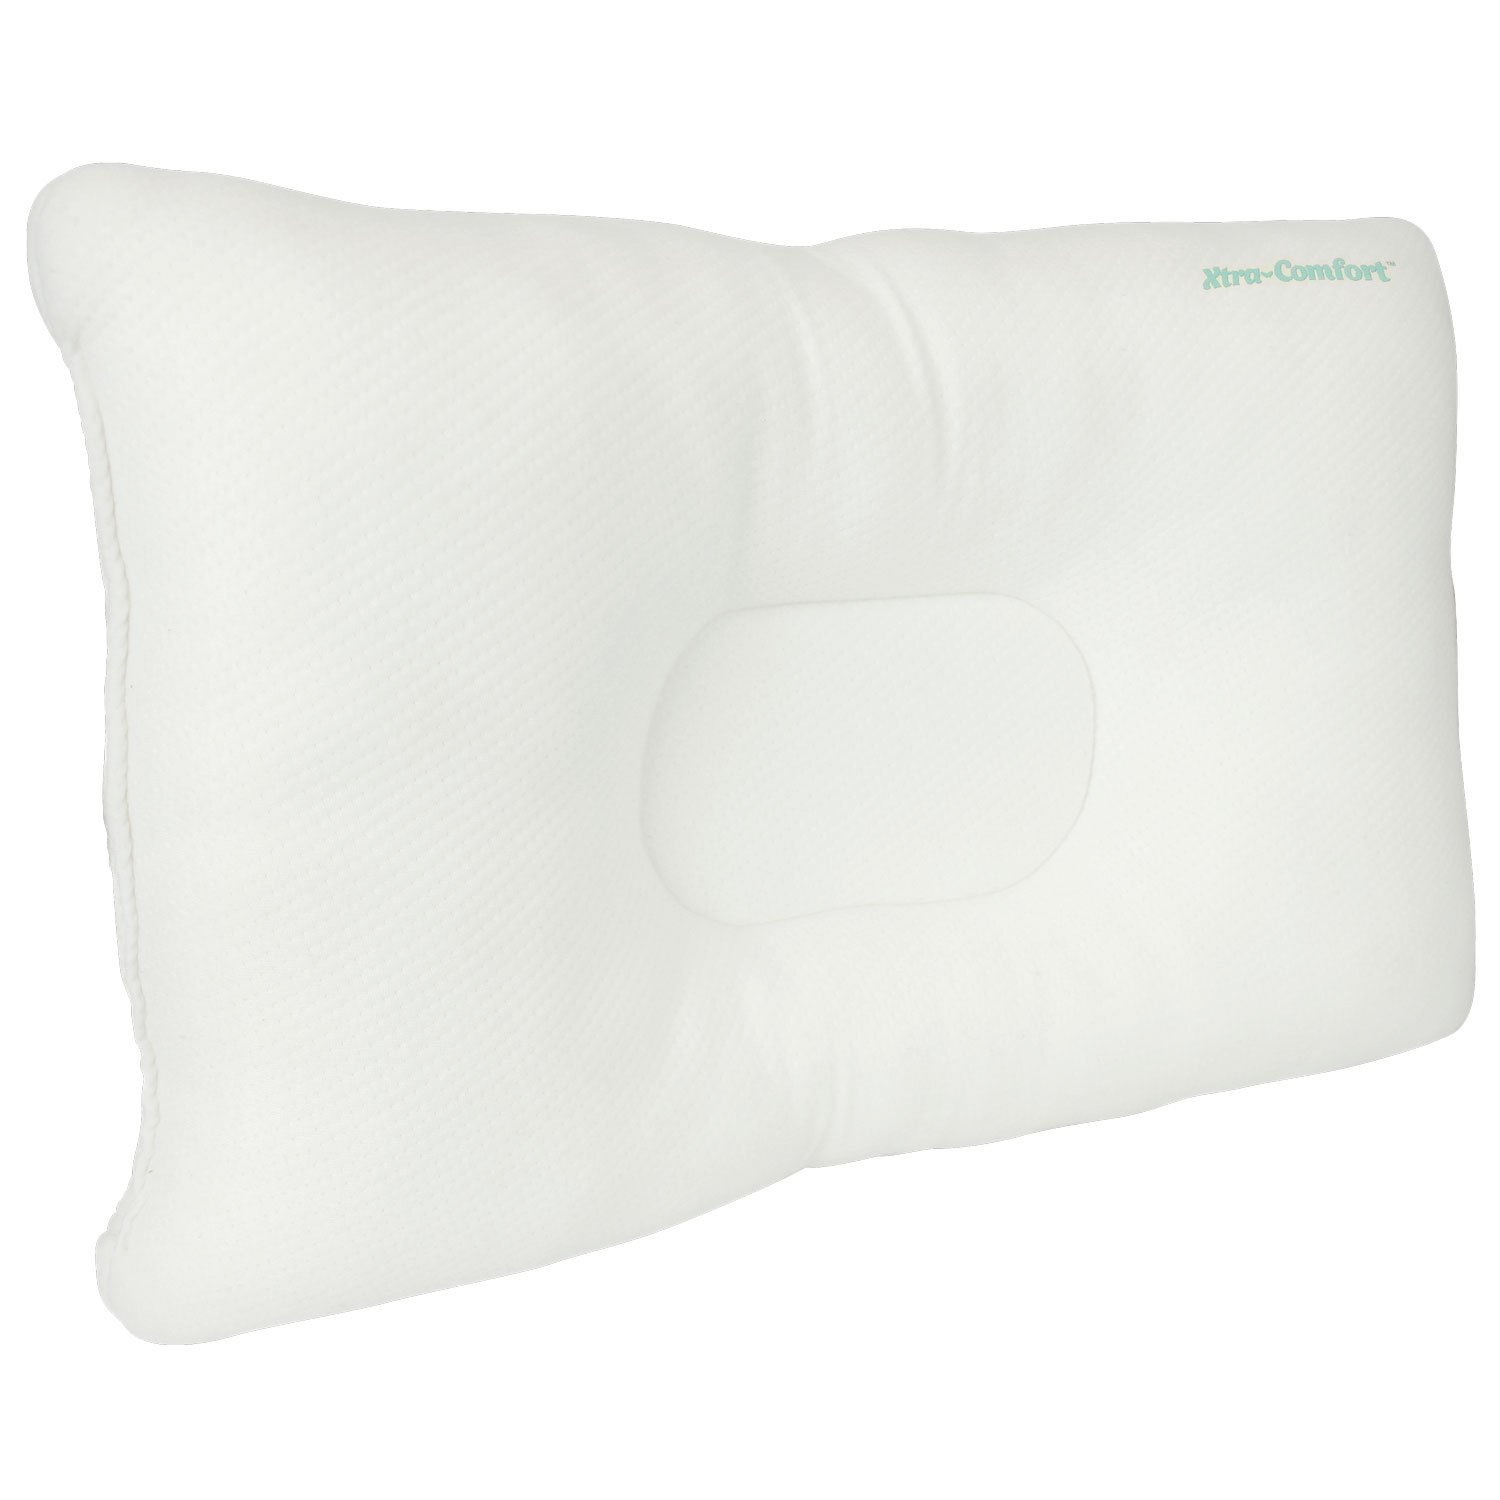 Cervical Pillow by Xtra-Comfort - Neck Pain Relief for Back and Side Sleepers - Comfortable & Therapeutic Chiropractic & Orthopedic Support Contours for Head and Spine Alignment (White)